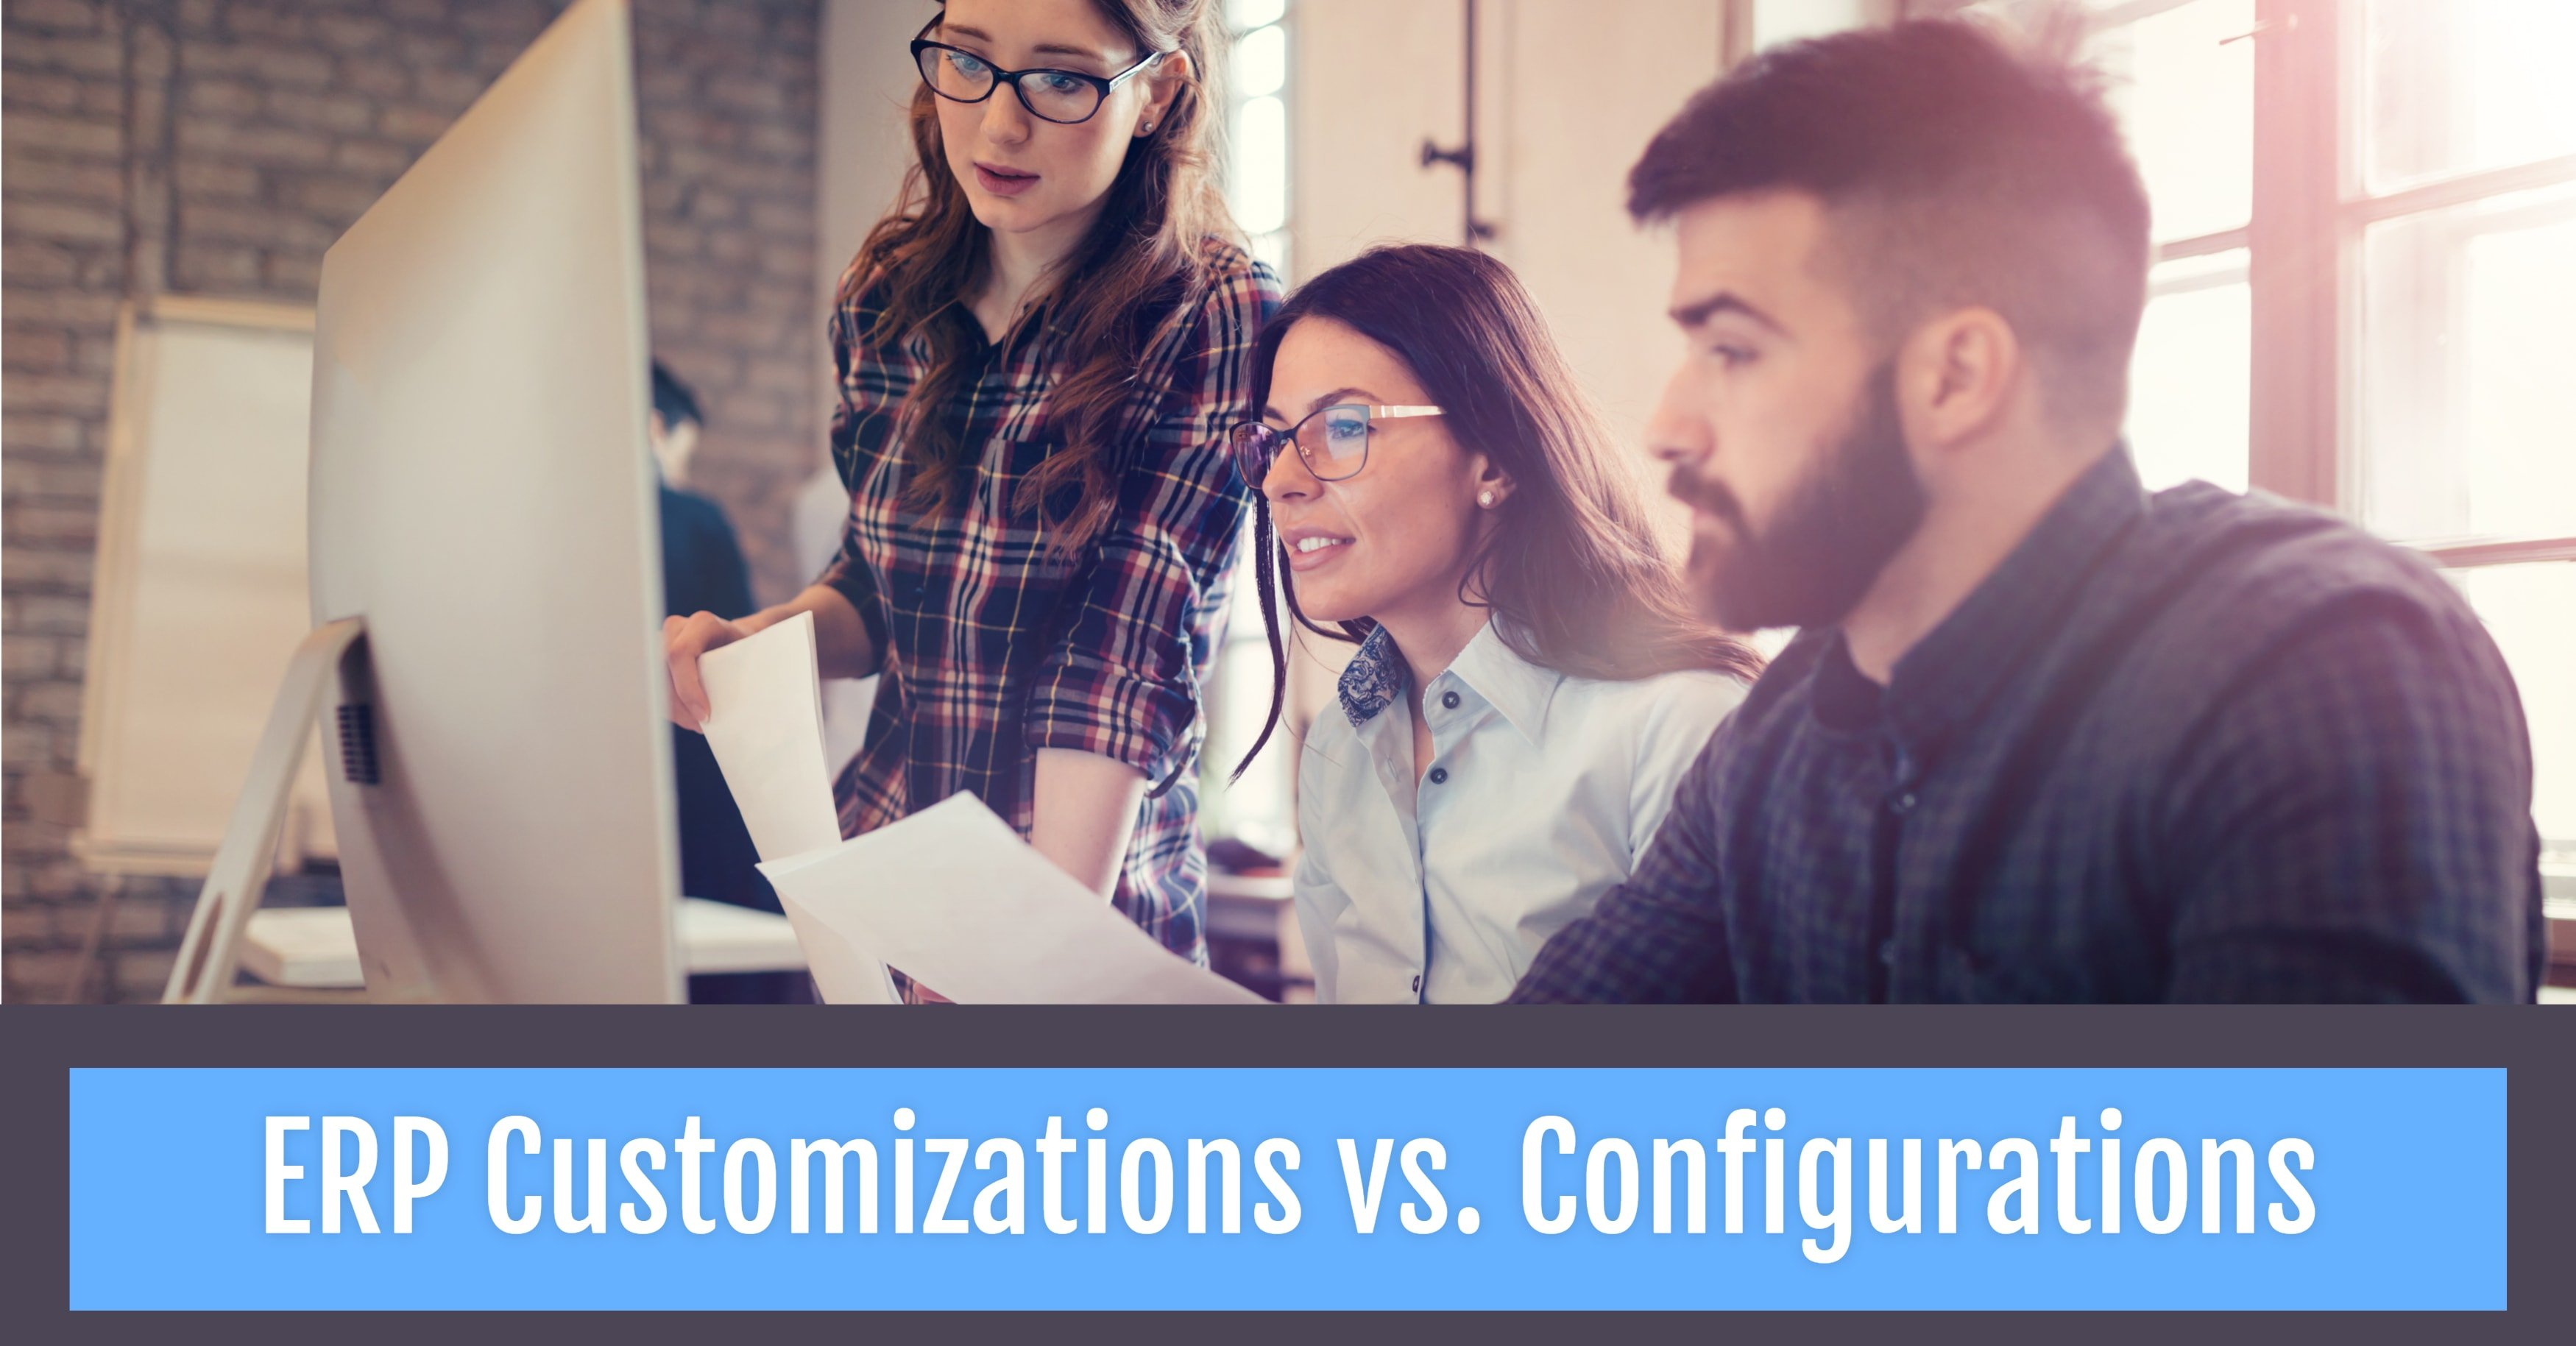 Customizations vs. Configurations: What's the Difference?